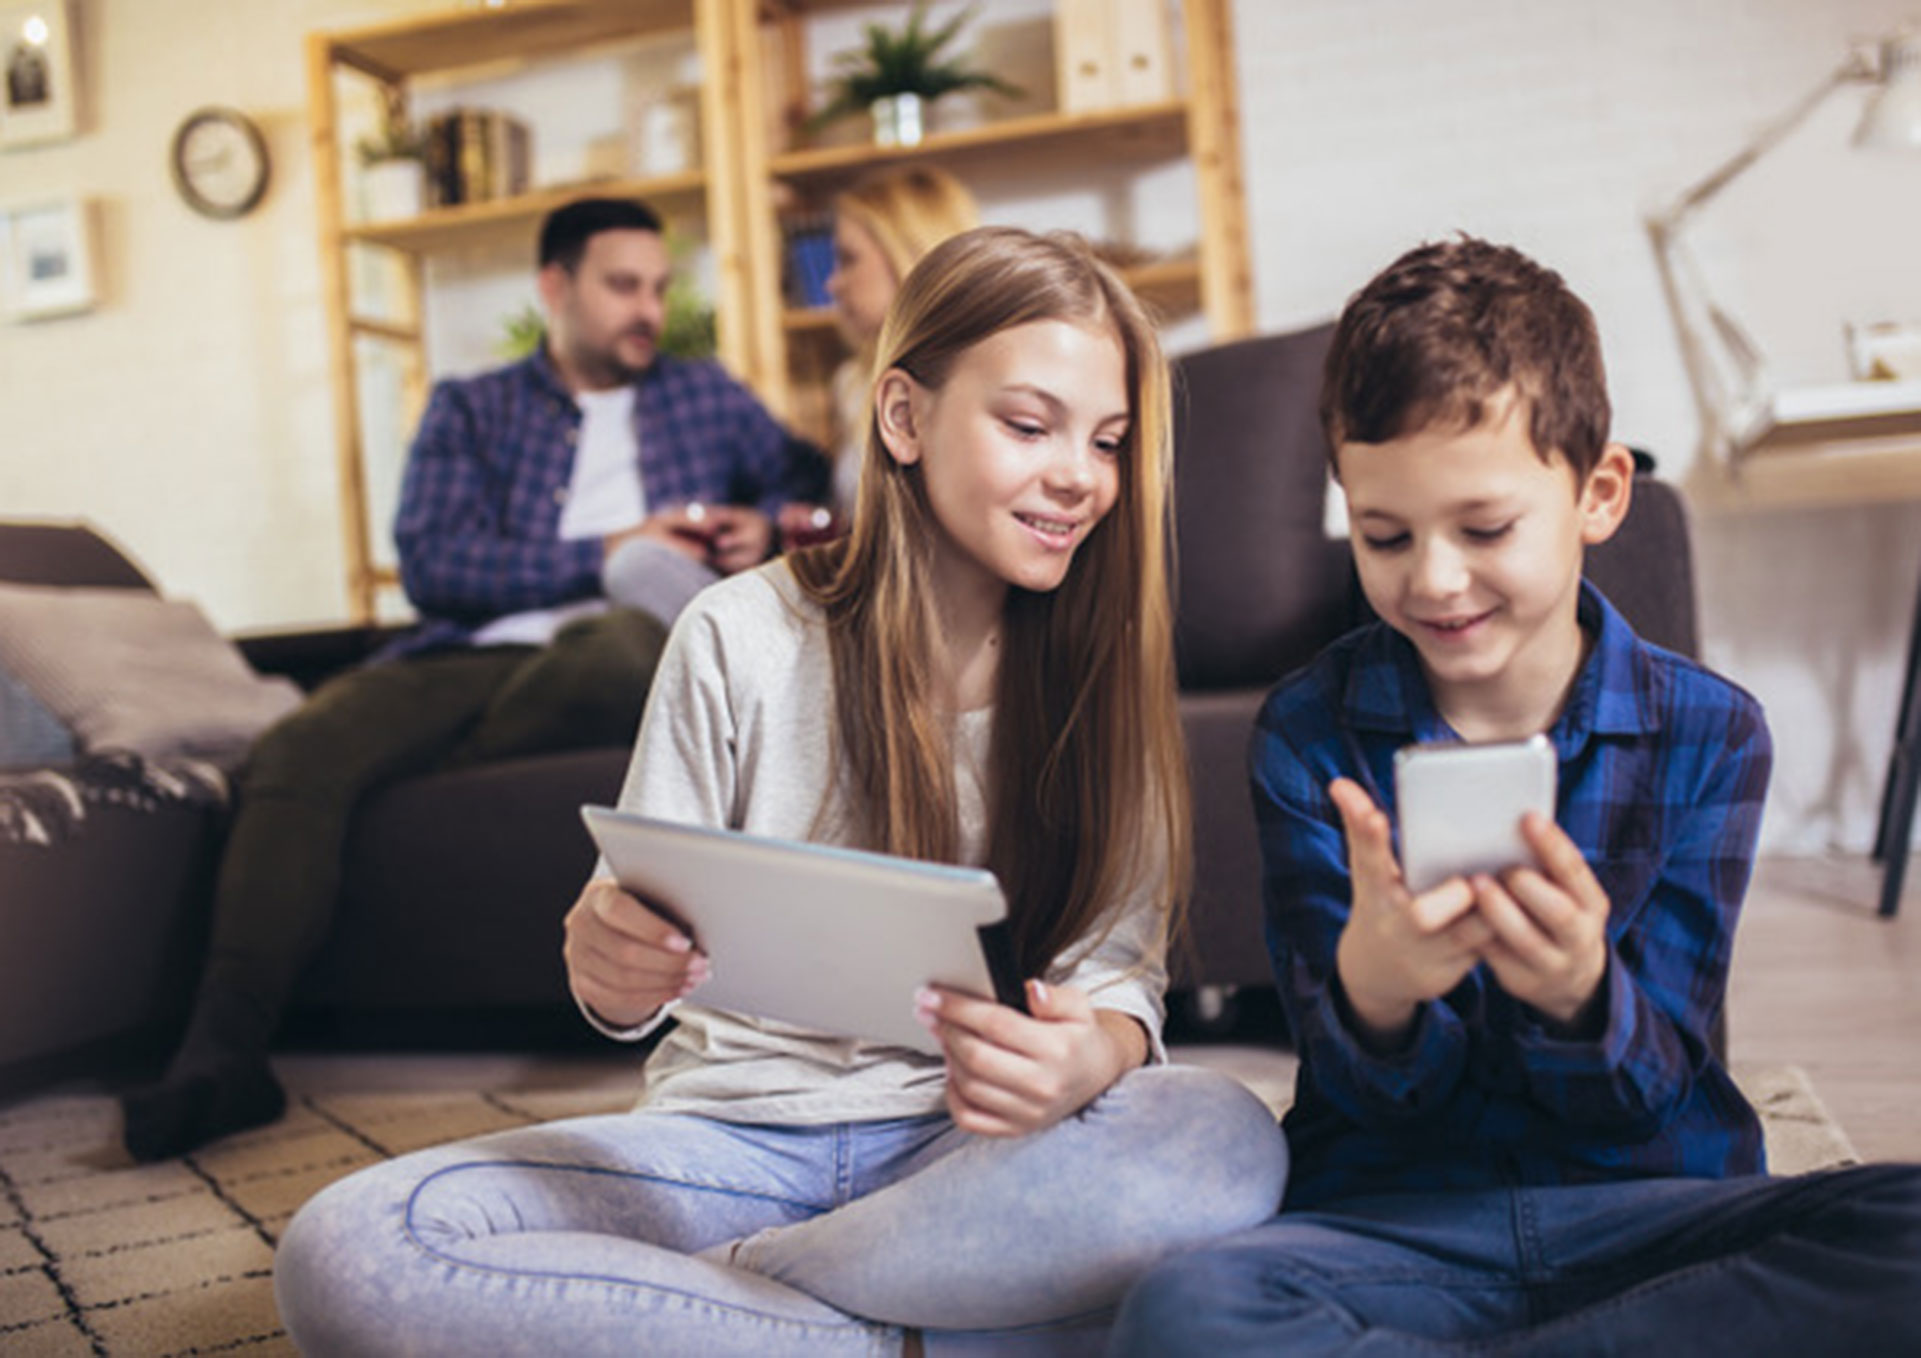 Keeping Kids Safe Online, US News and World Report, April 2020